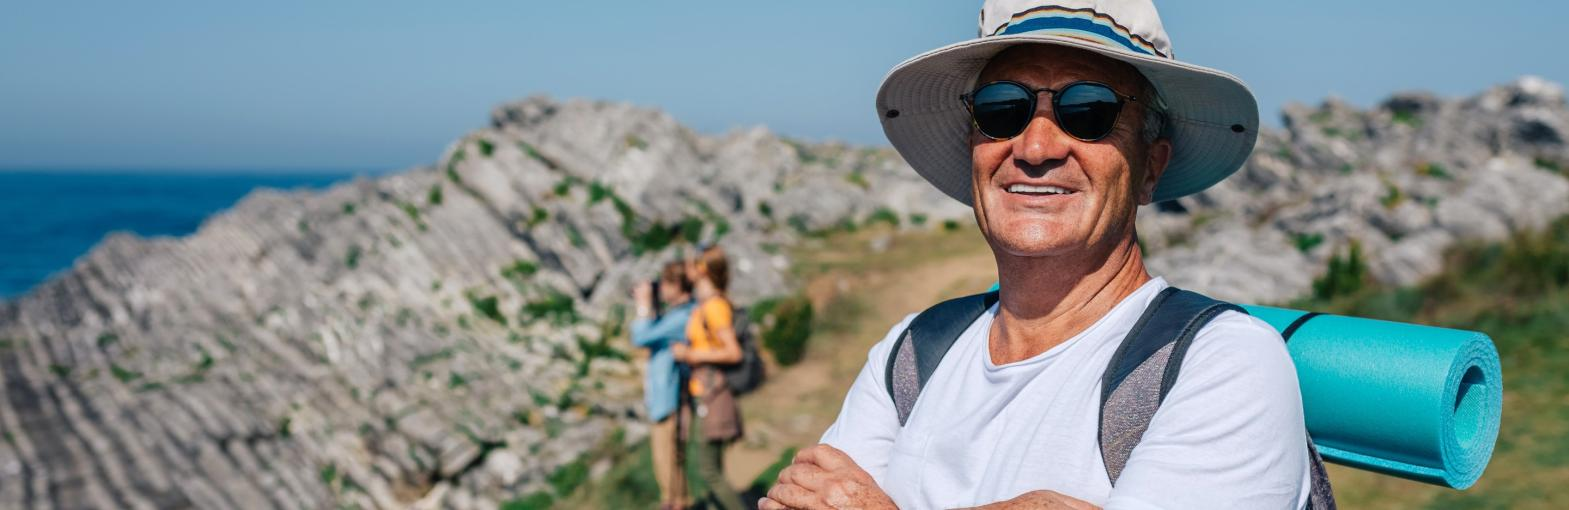 Happy senior man trekking along a seaside track smiling at the camera